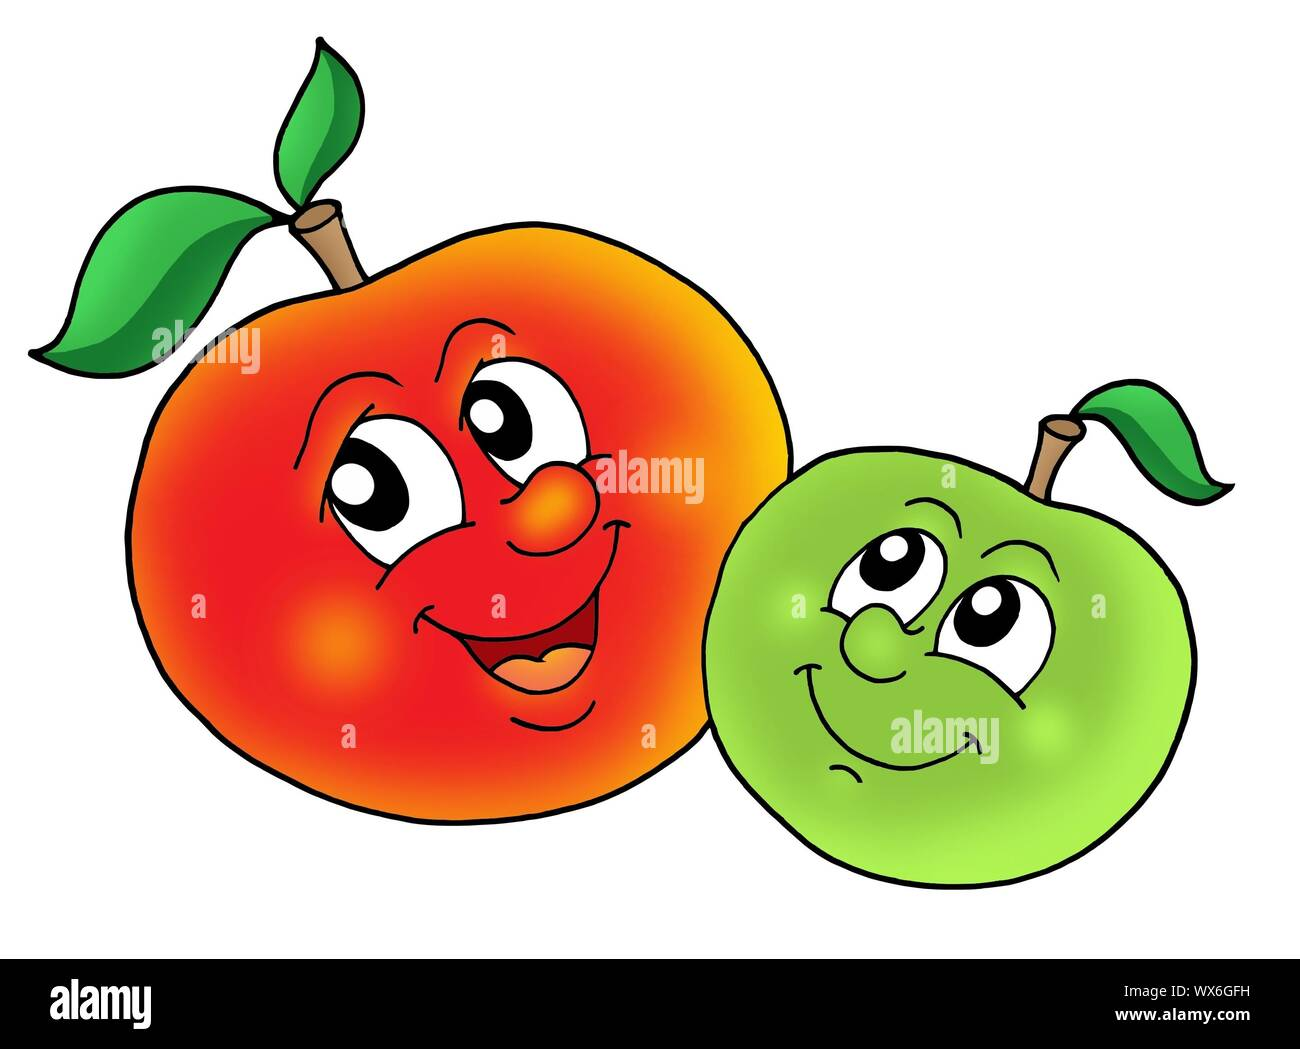 pair of smiling apples color illustration WX6GFH